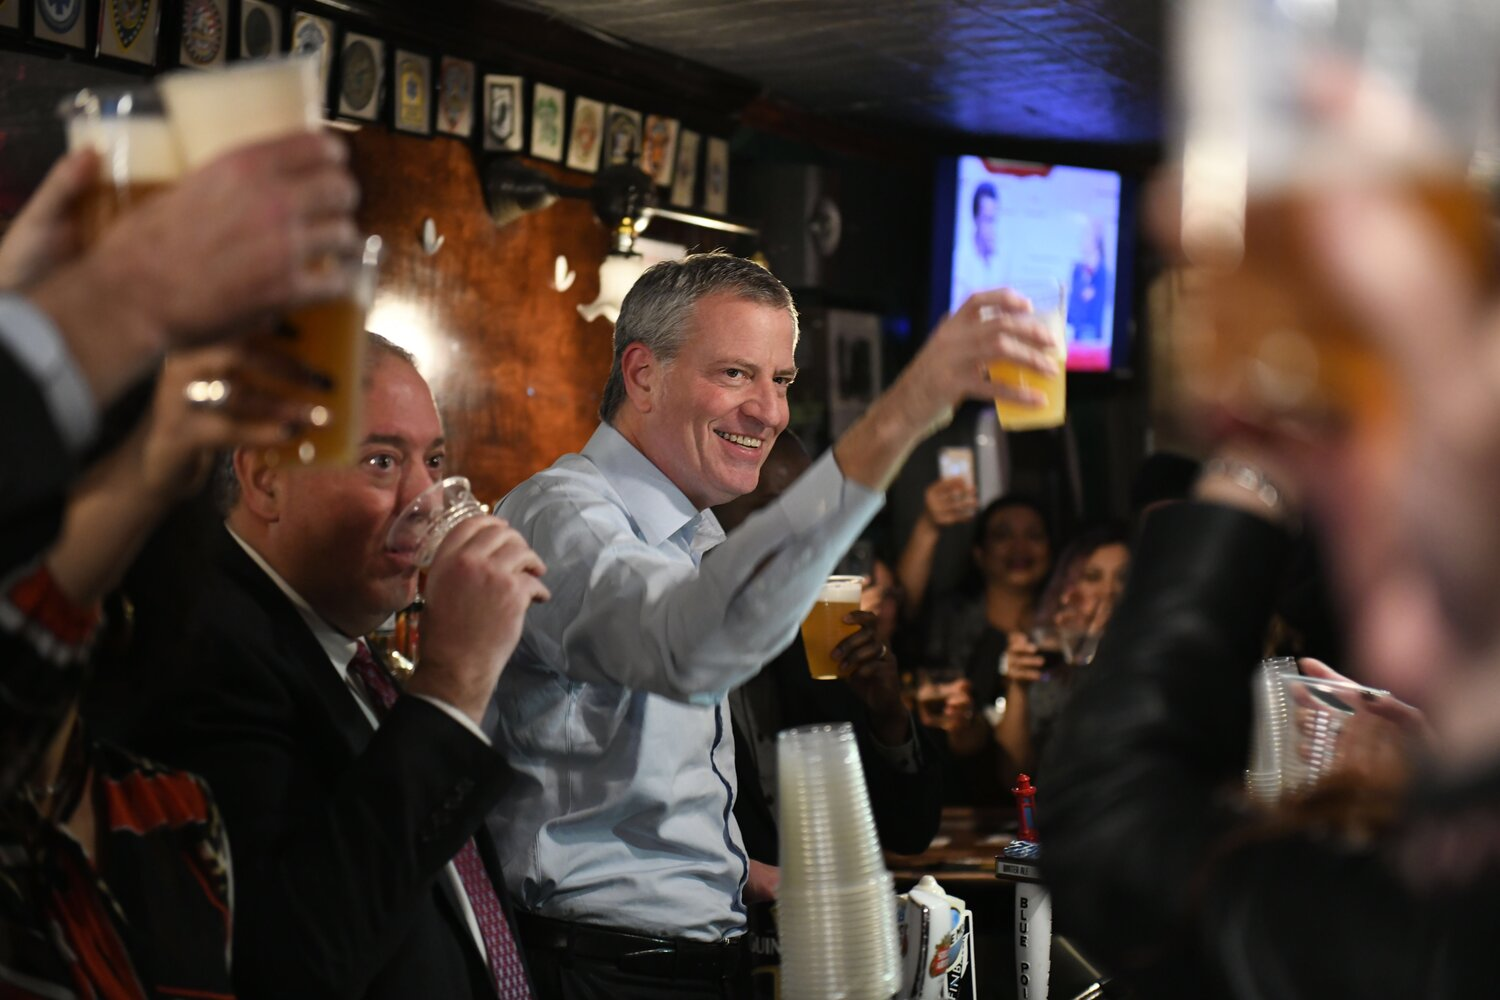 Mayor Bill de Blasio toasted a lease agreement that would enable 190-year-old Woodhaven watering hole Neir's Tavern to stay open. Photo Ed Reed/Mayoral Photography Office.